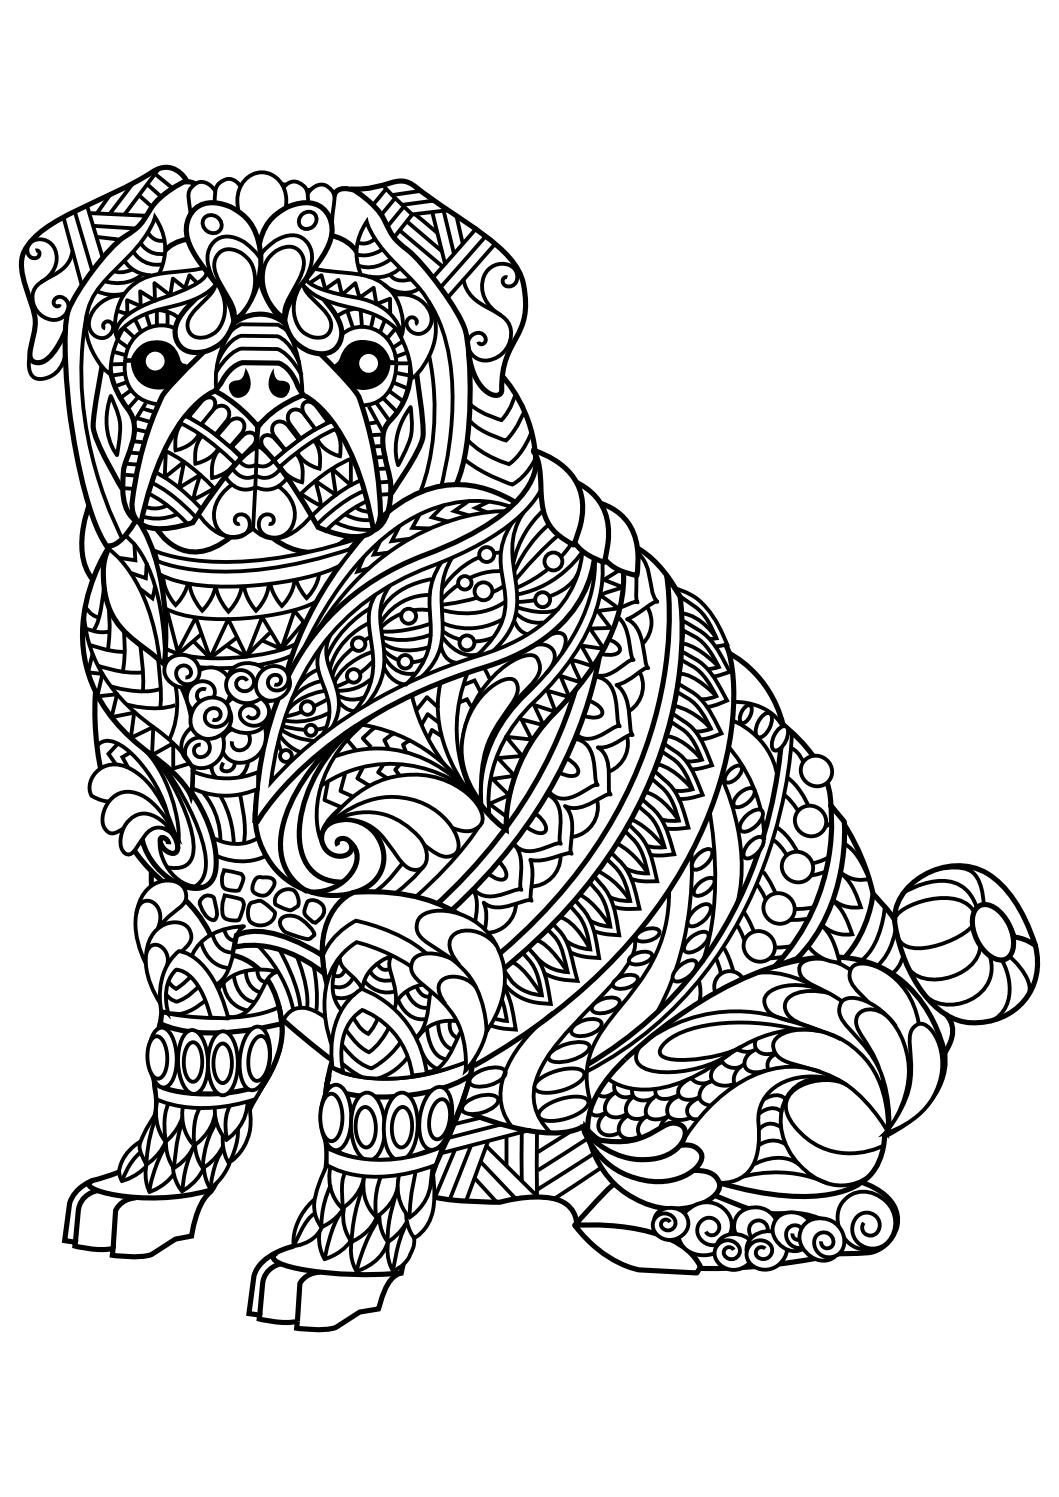 free printable animal coloring pages for adults - animal coloring pages pdf coloring animals pinterest